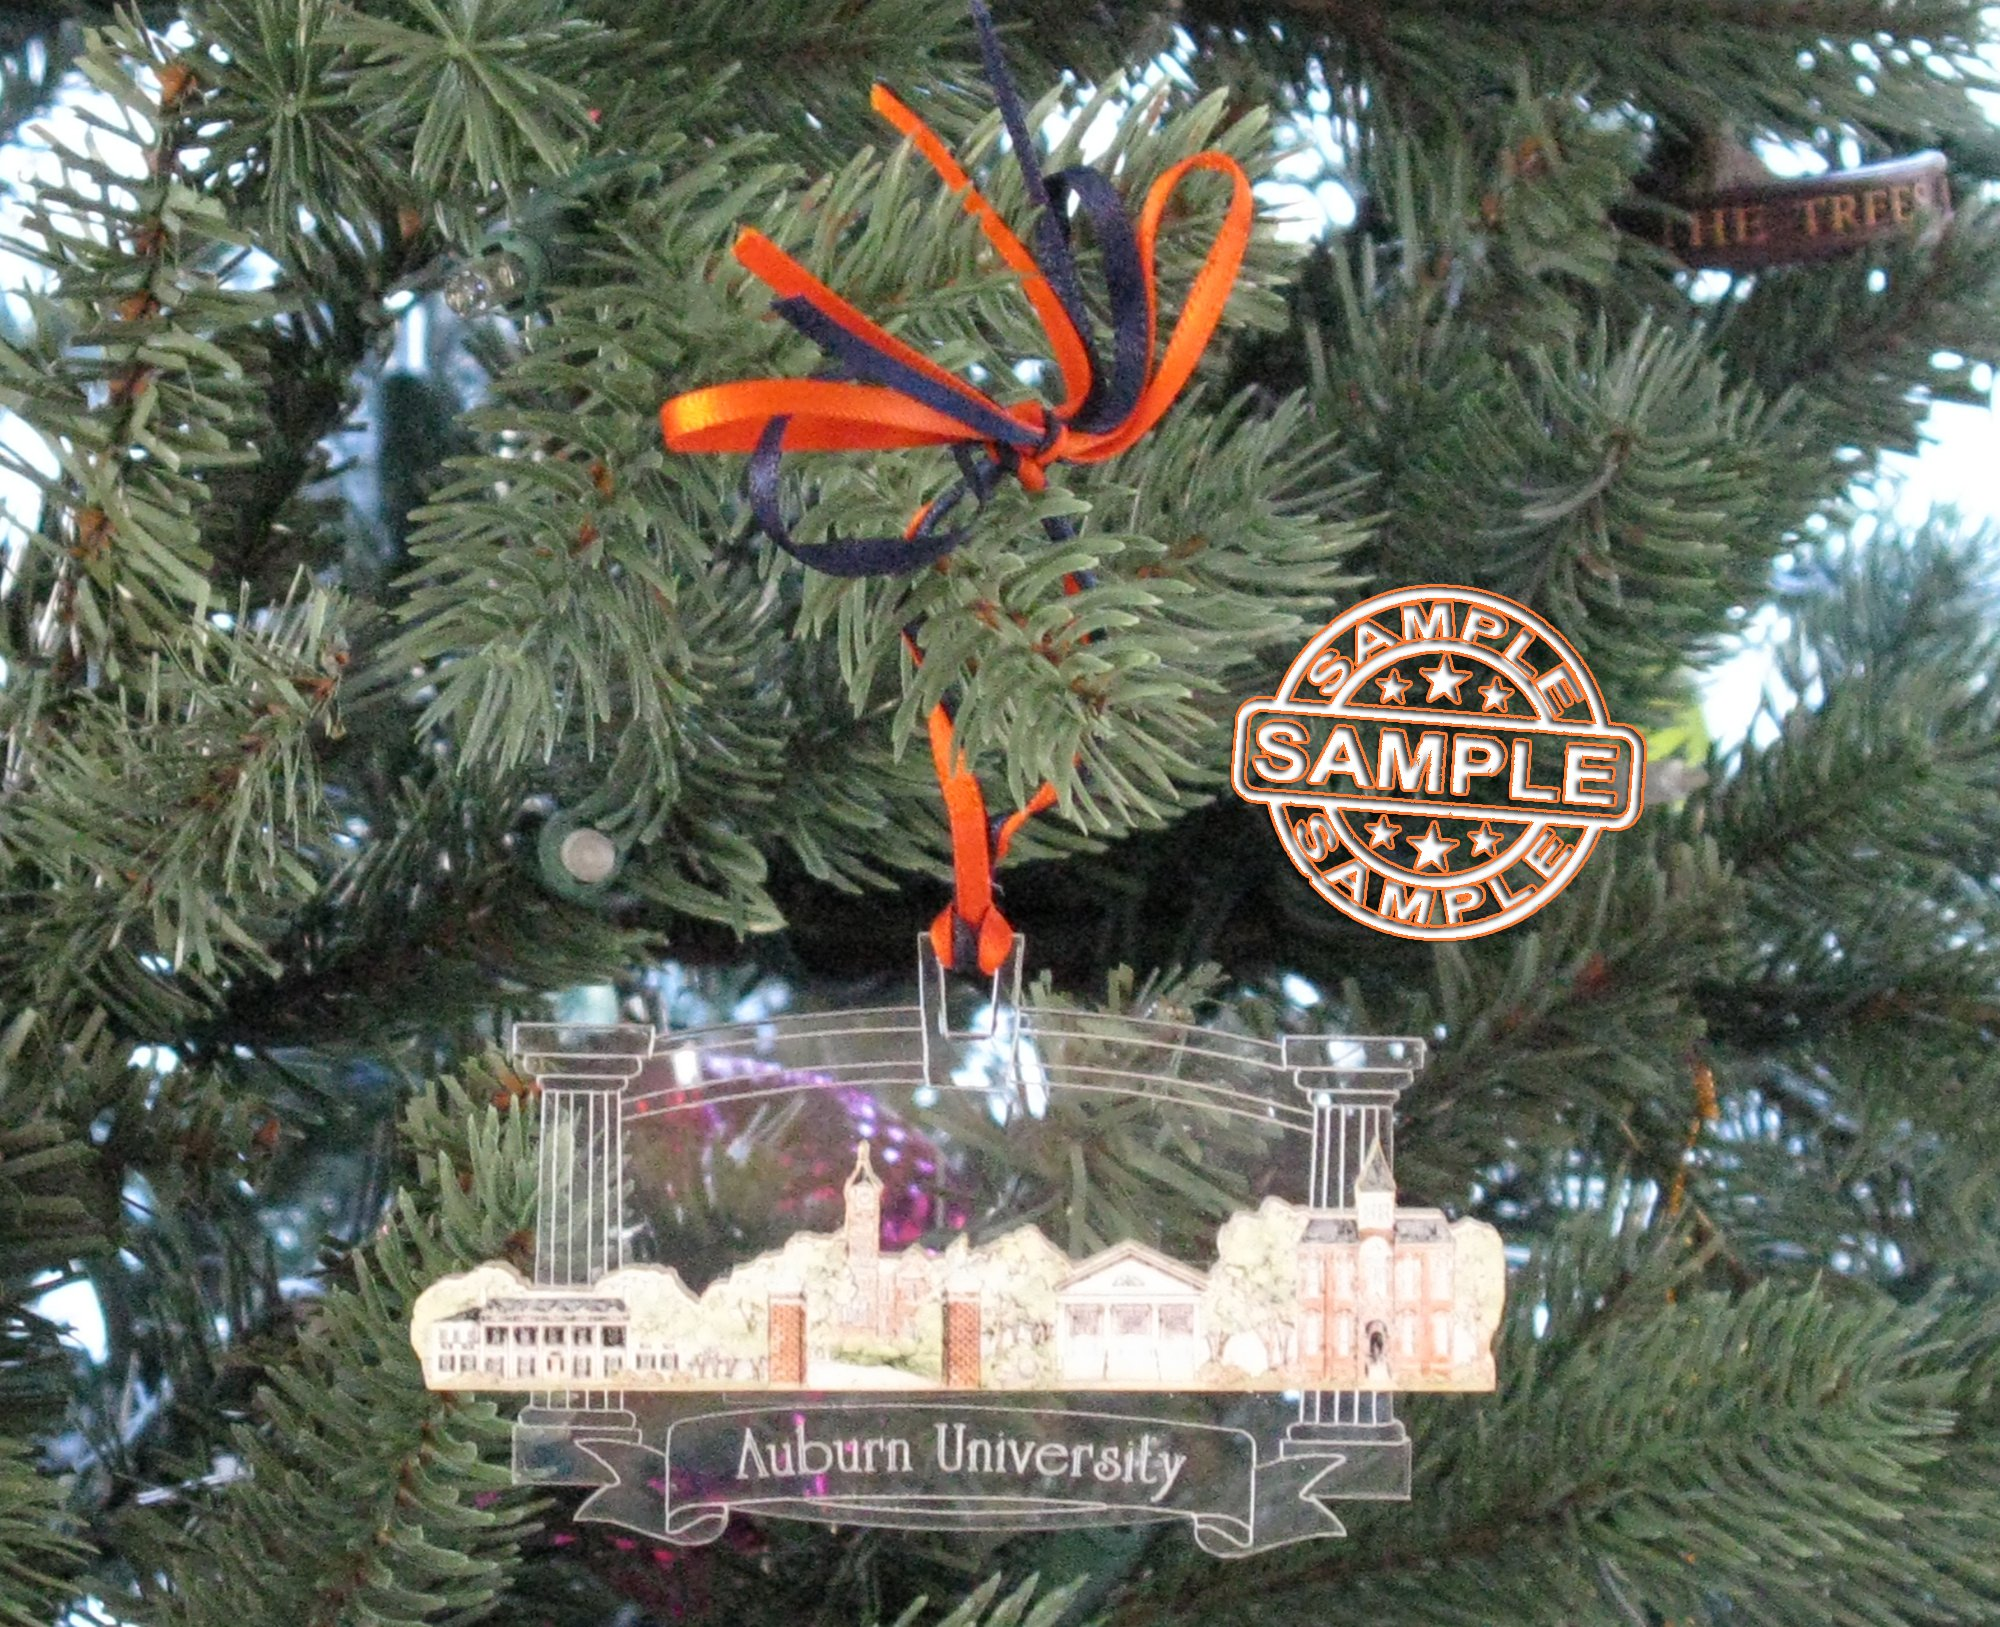 Stetson College of Law - Collegiate Sculptured Ornament by Sculptured Watercolor Ornaments (Image #1)